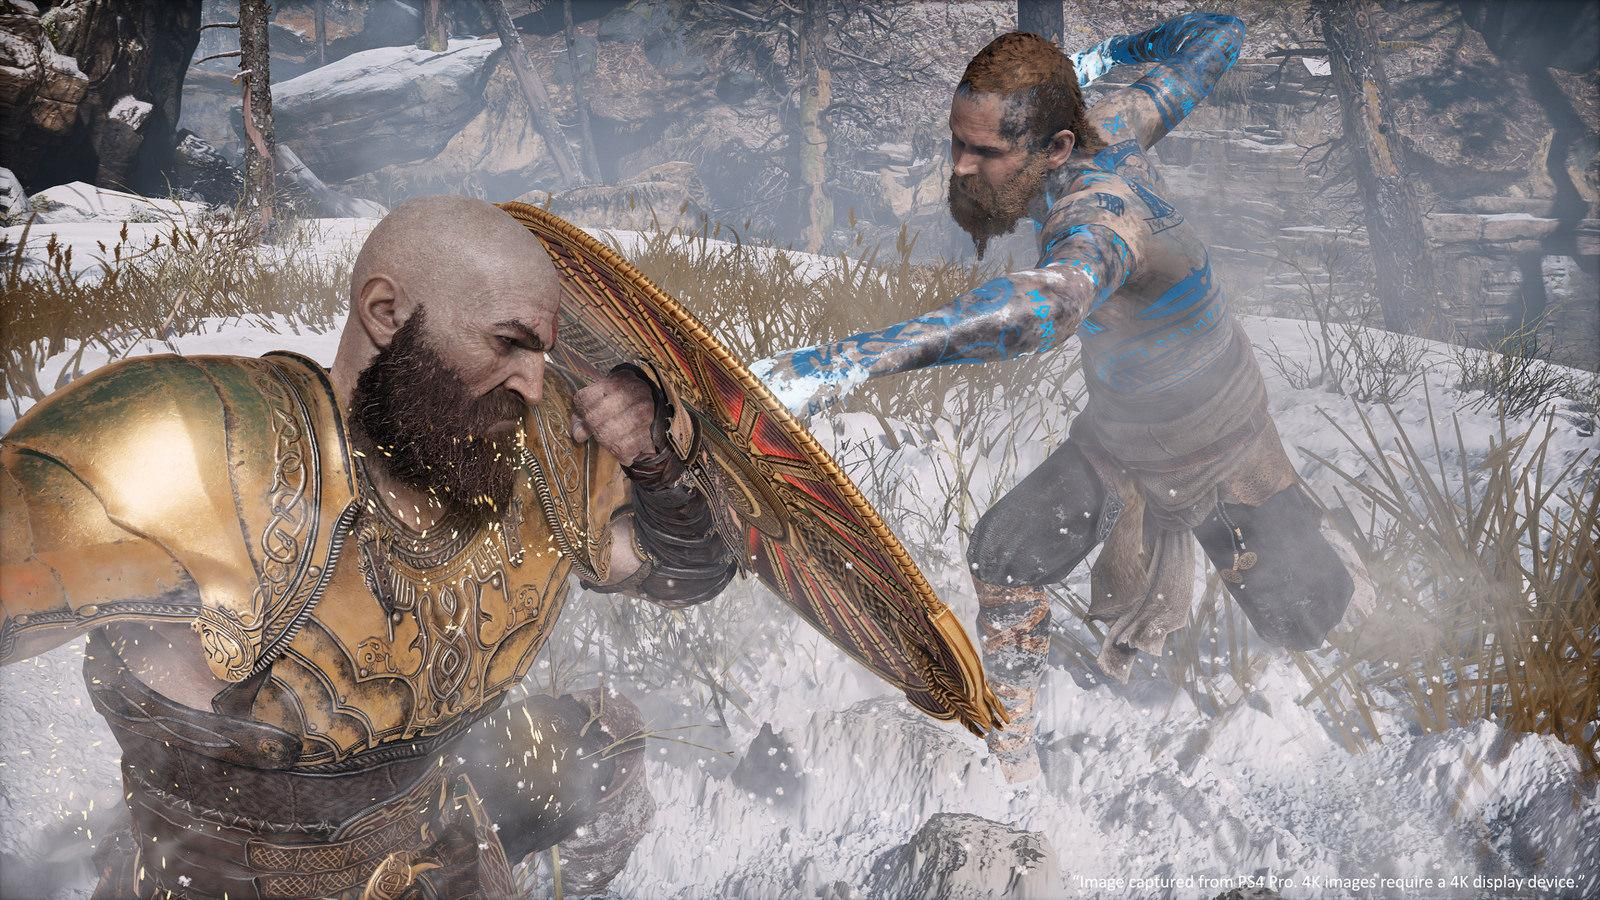 God of War New Game Plus Coming to PS4, But No DLC